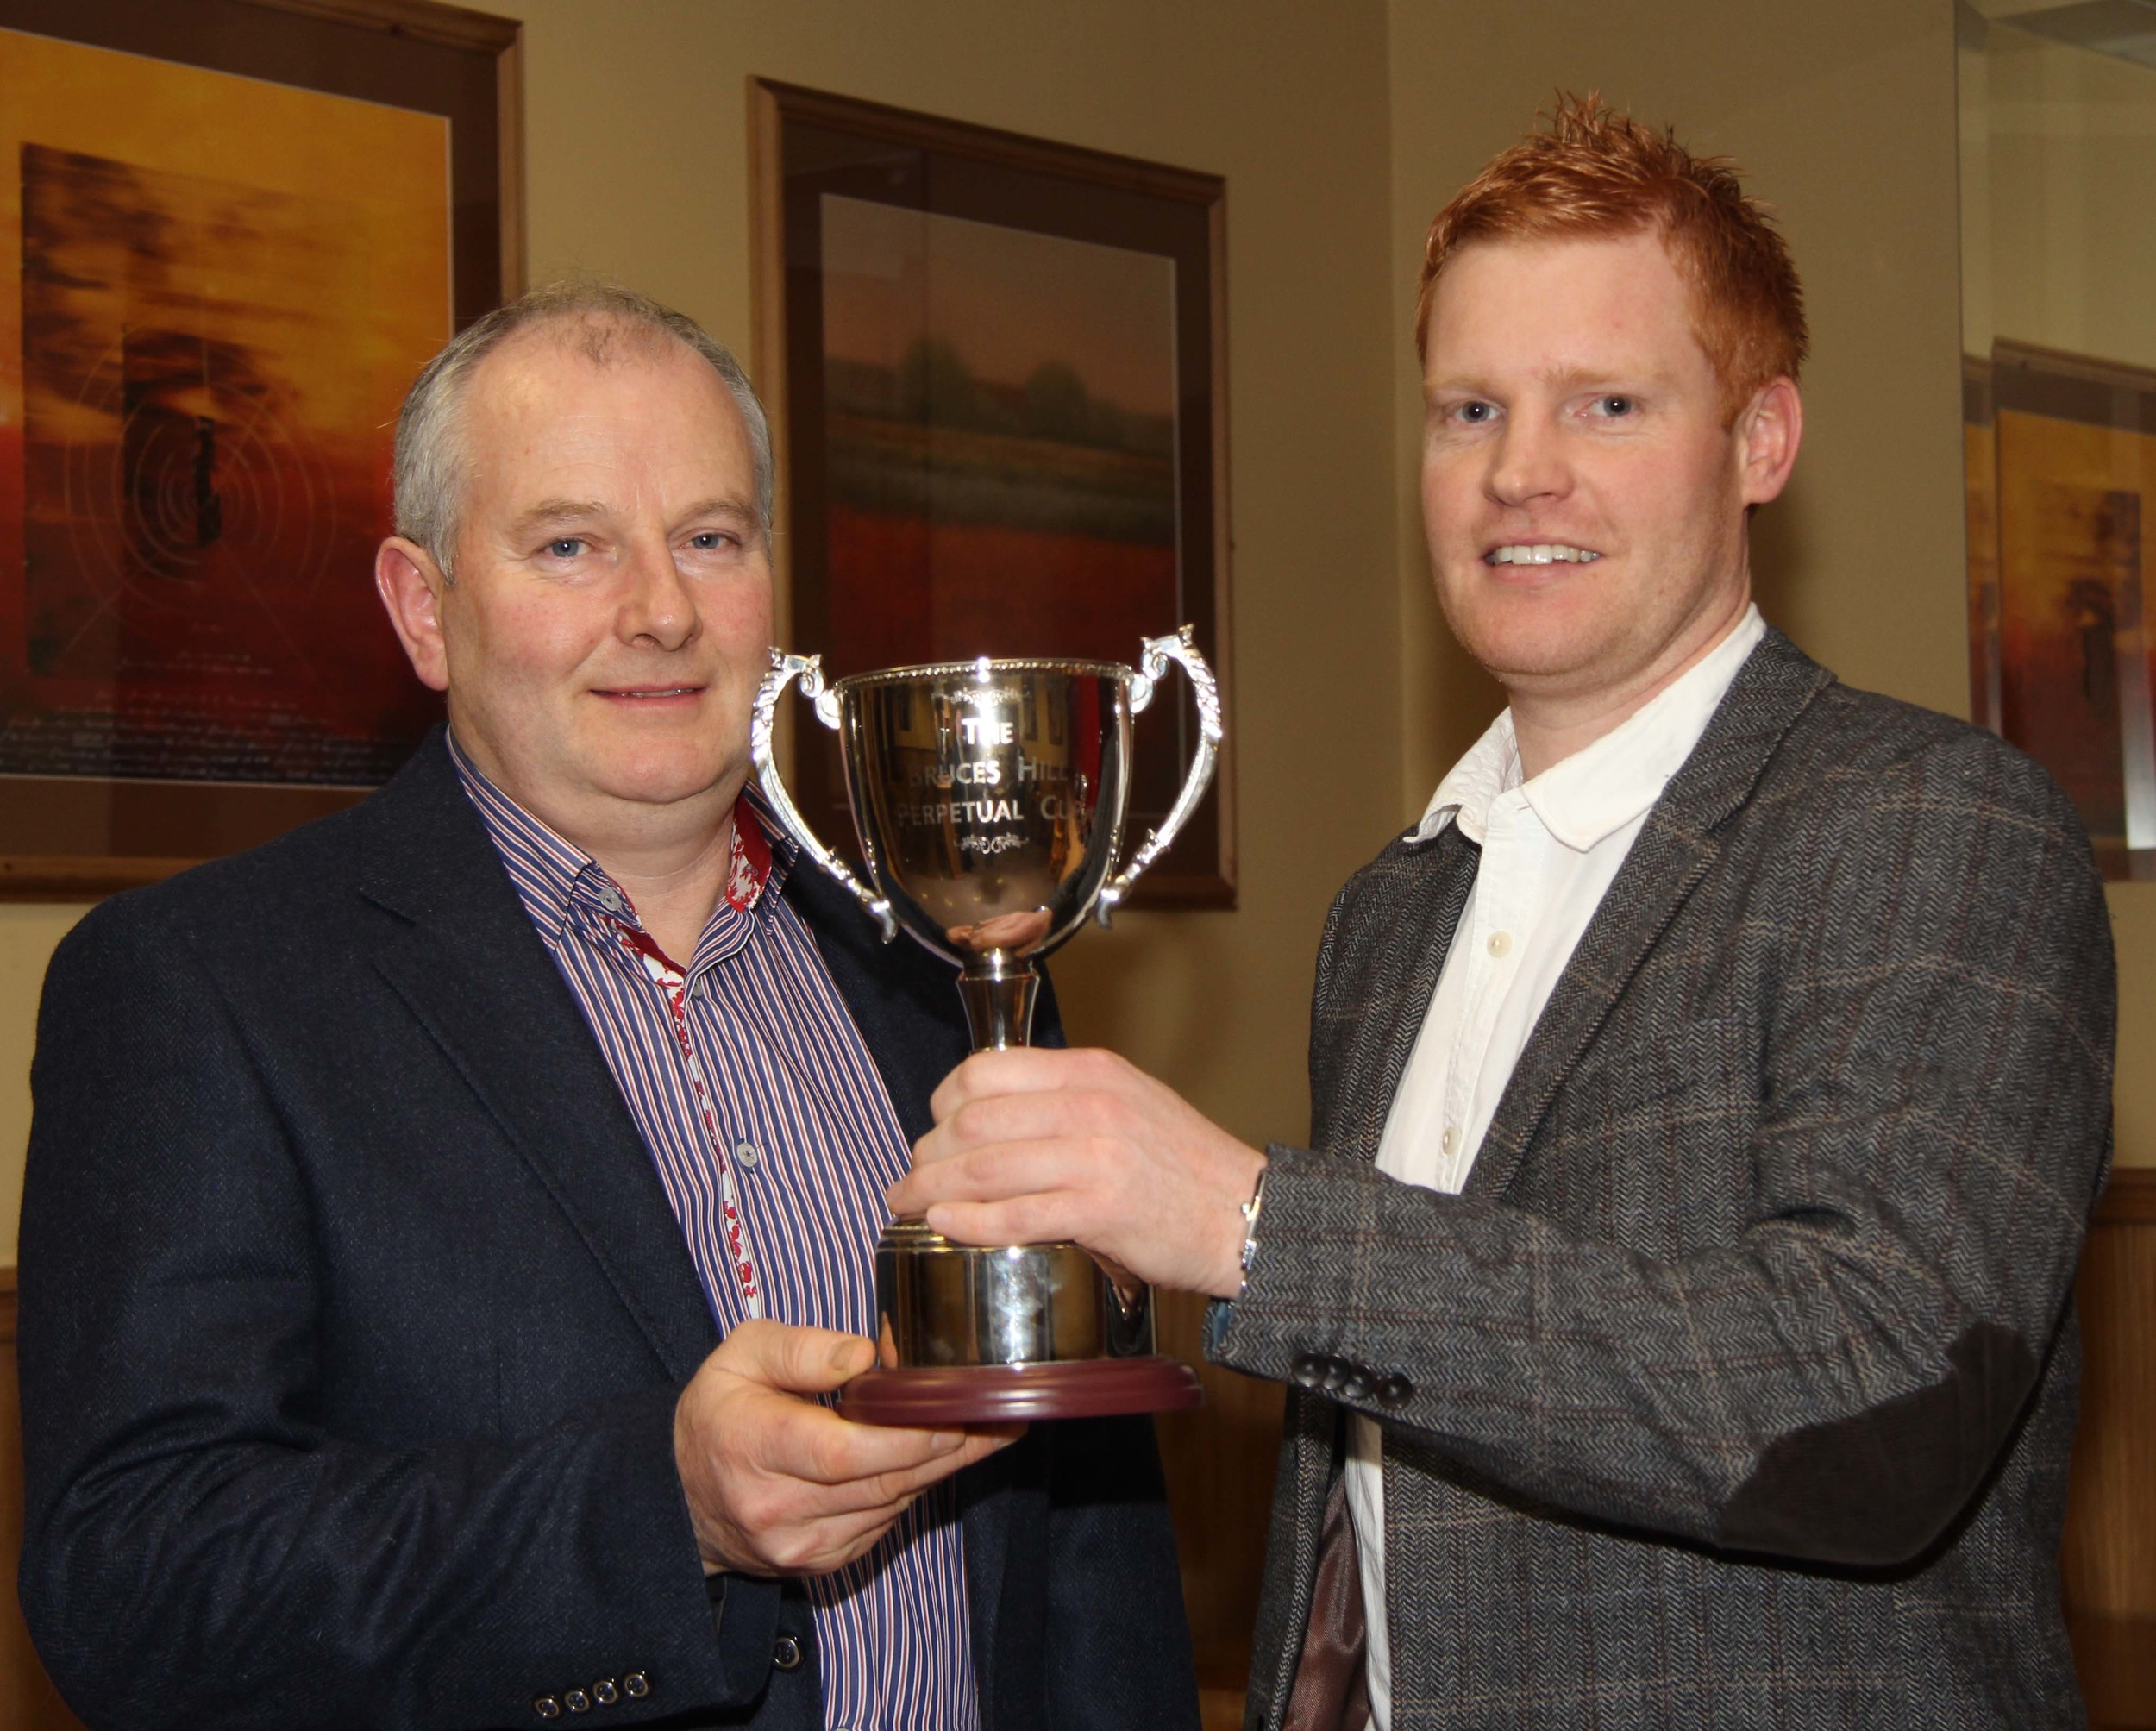 Francis Connon, Connon General Merchants, presents the trophy for the champion at the May show and sale to Christopher Weatherup, Ballyclare.